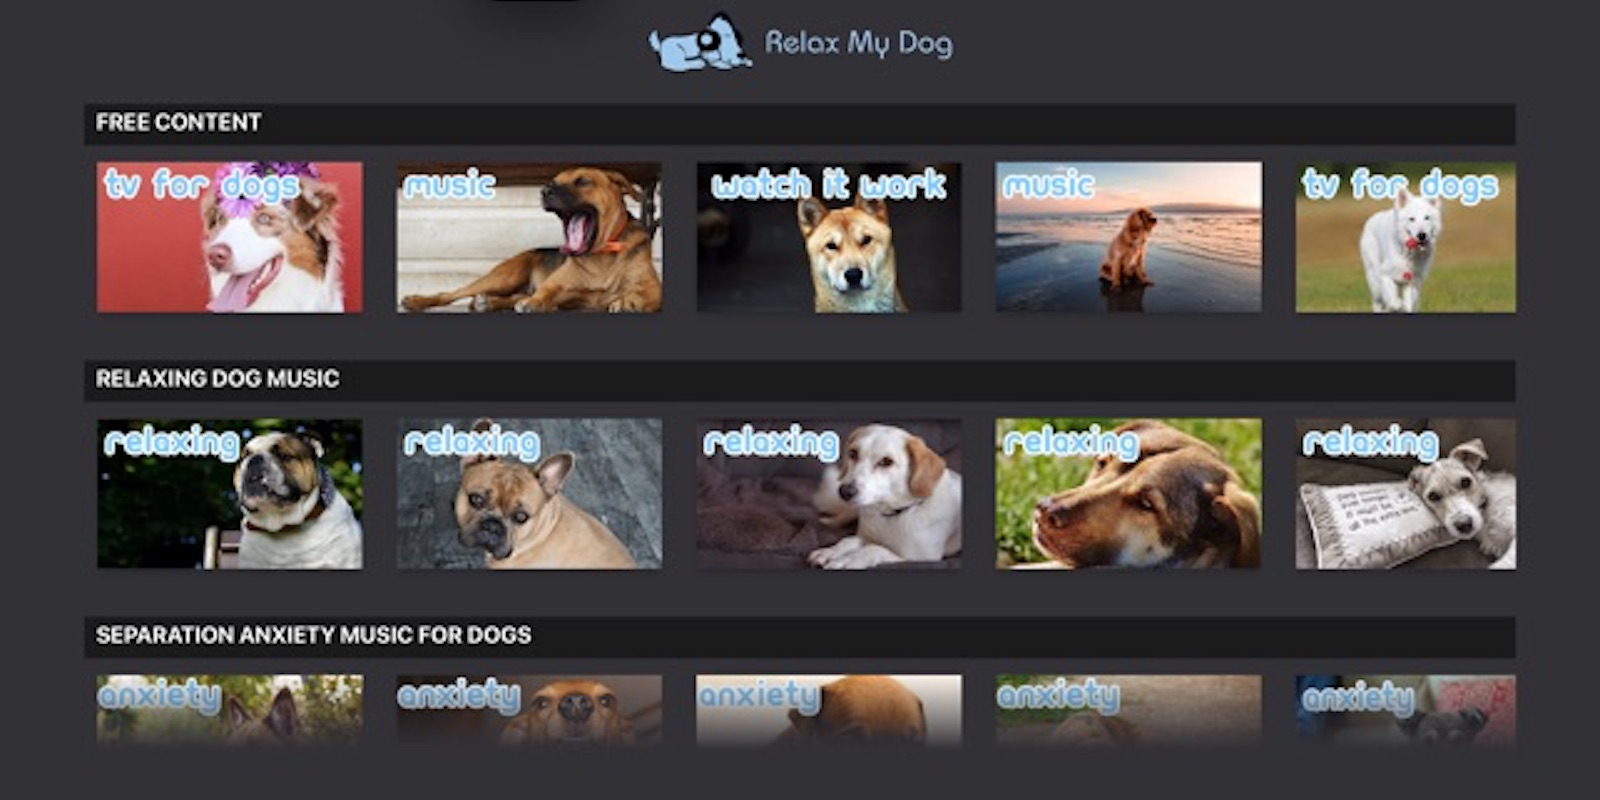 With RelaxMyDog, you get unlimited access to music and videos designed to help dogs overcome anxiety, loneliness, stress, boredom and hyperactivity.